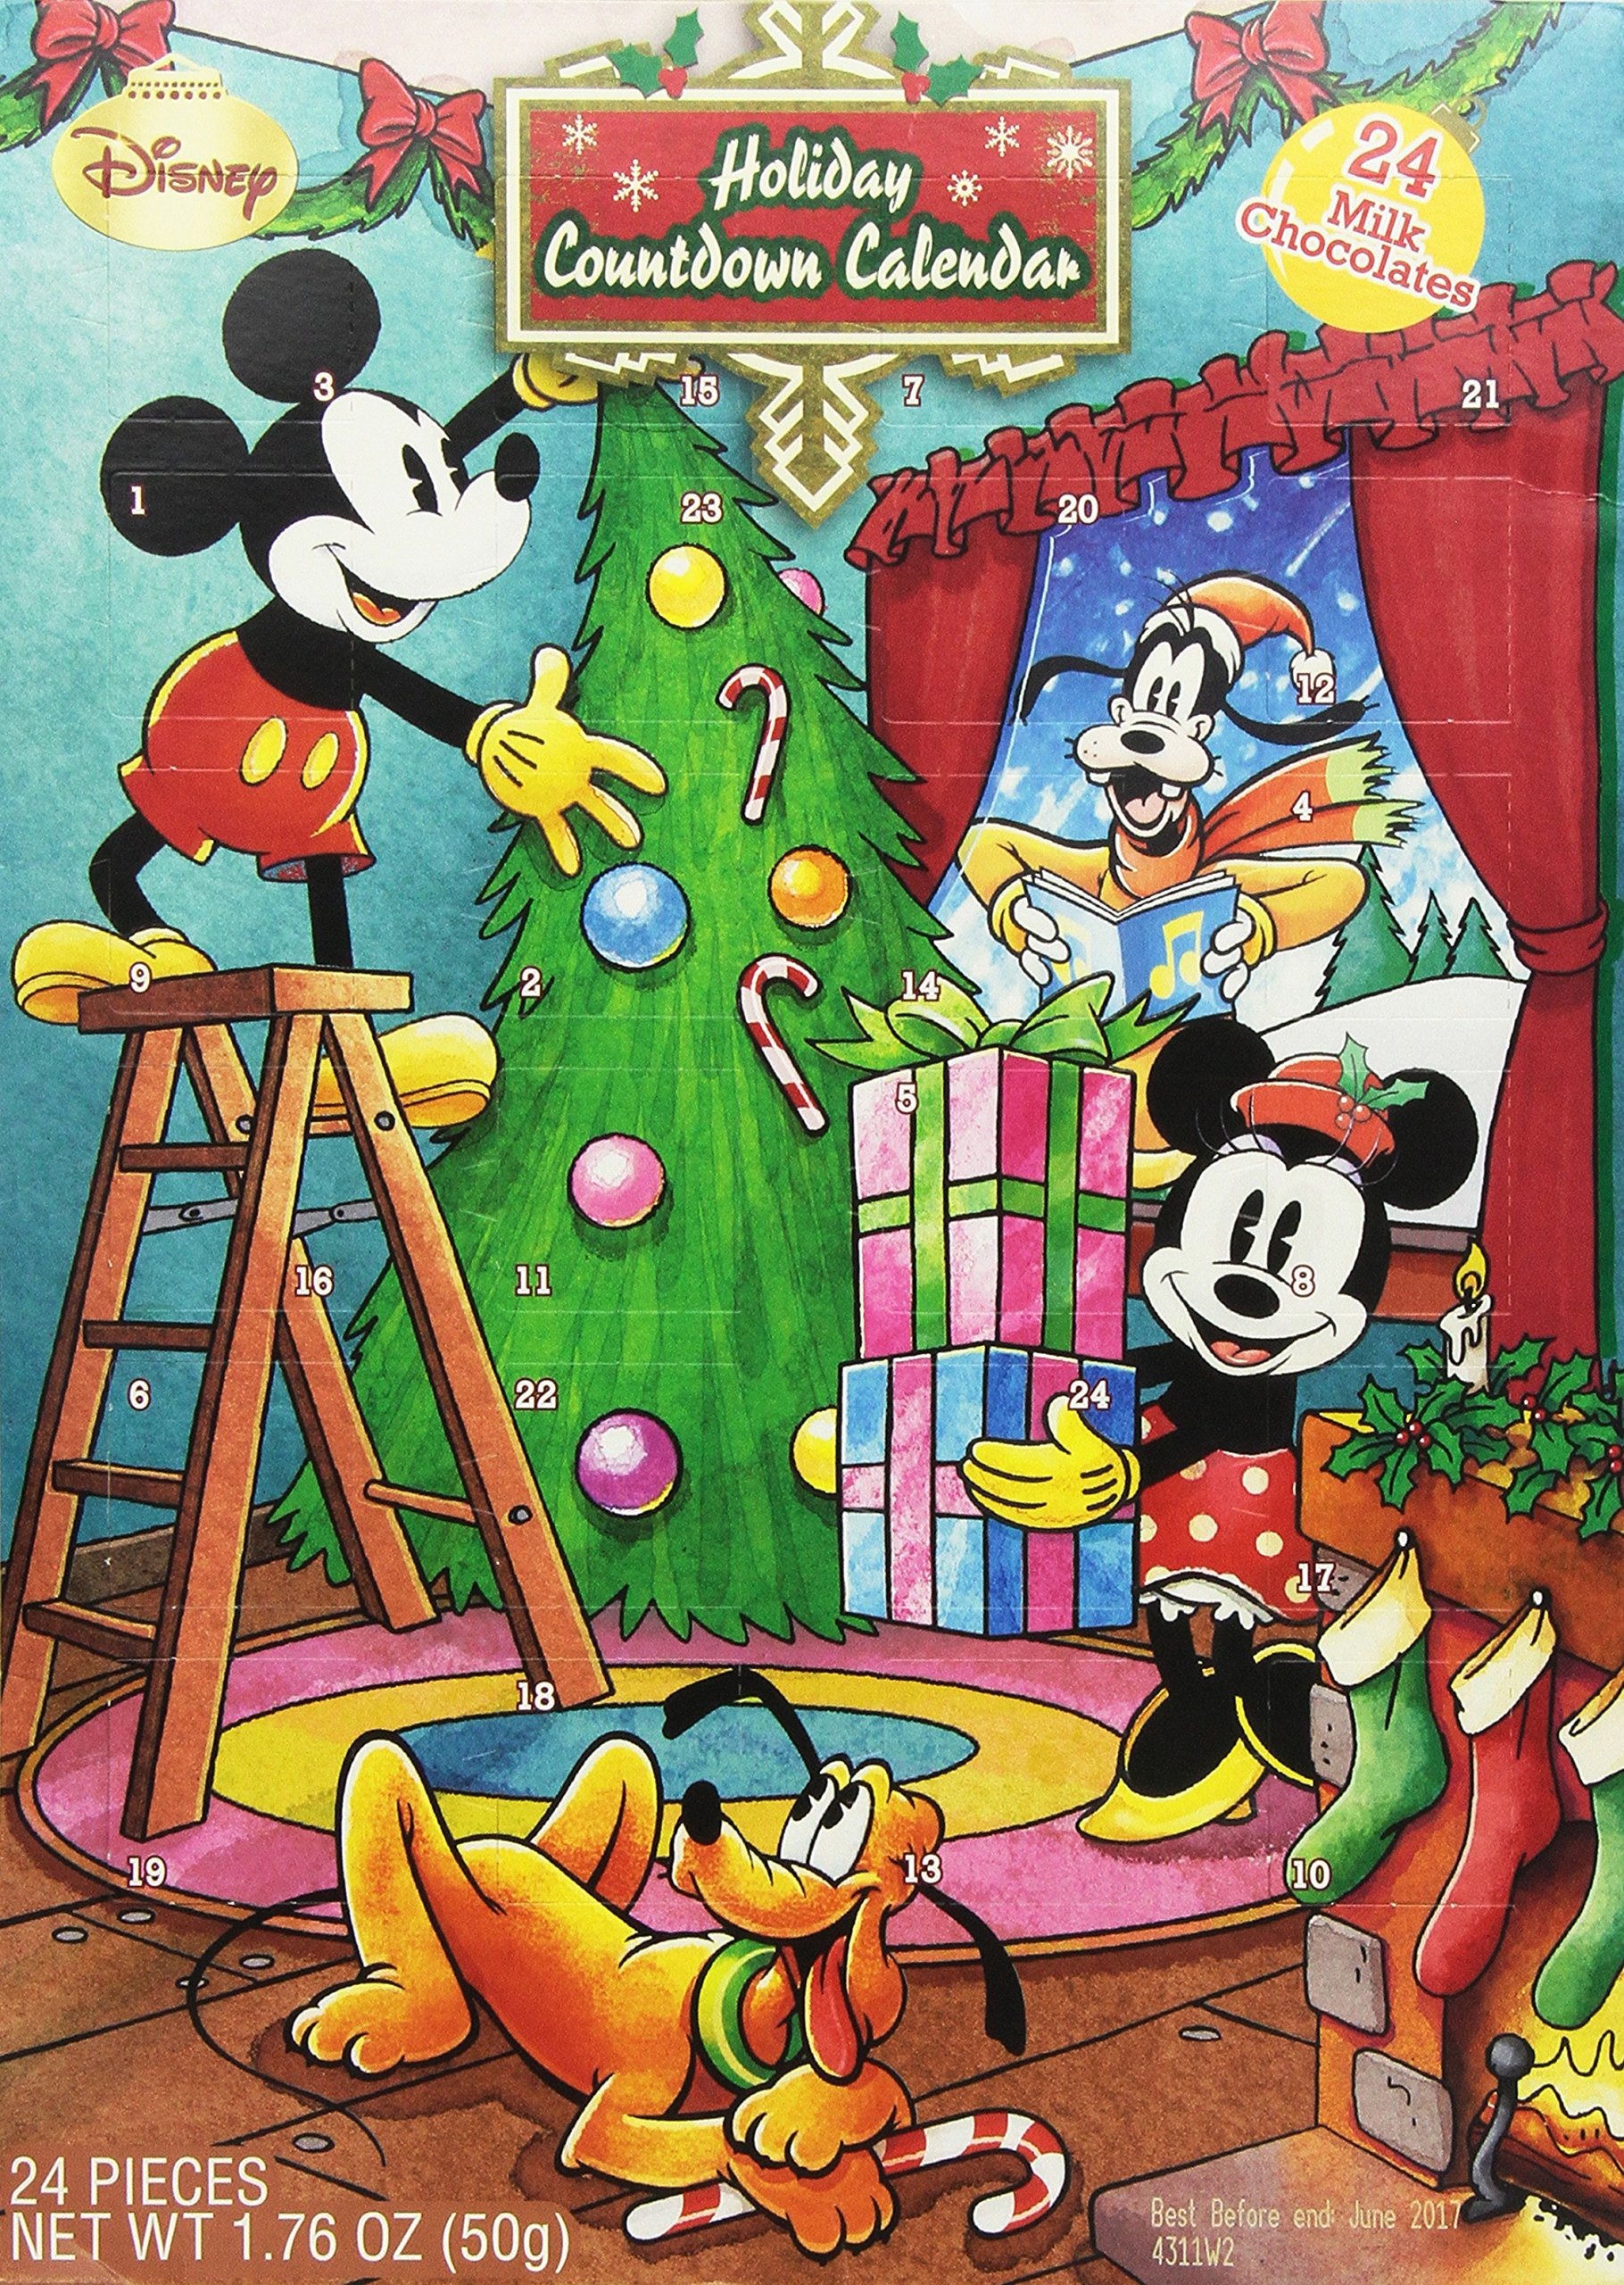 disney holiday countdown calendar with chocolates disney. Black Bedroom Furniture Sets. Home Design Ideas